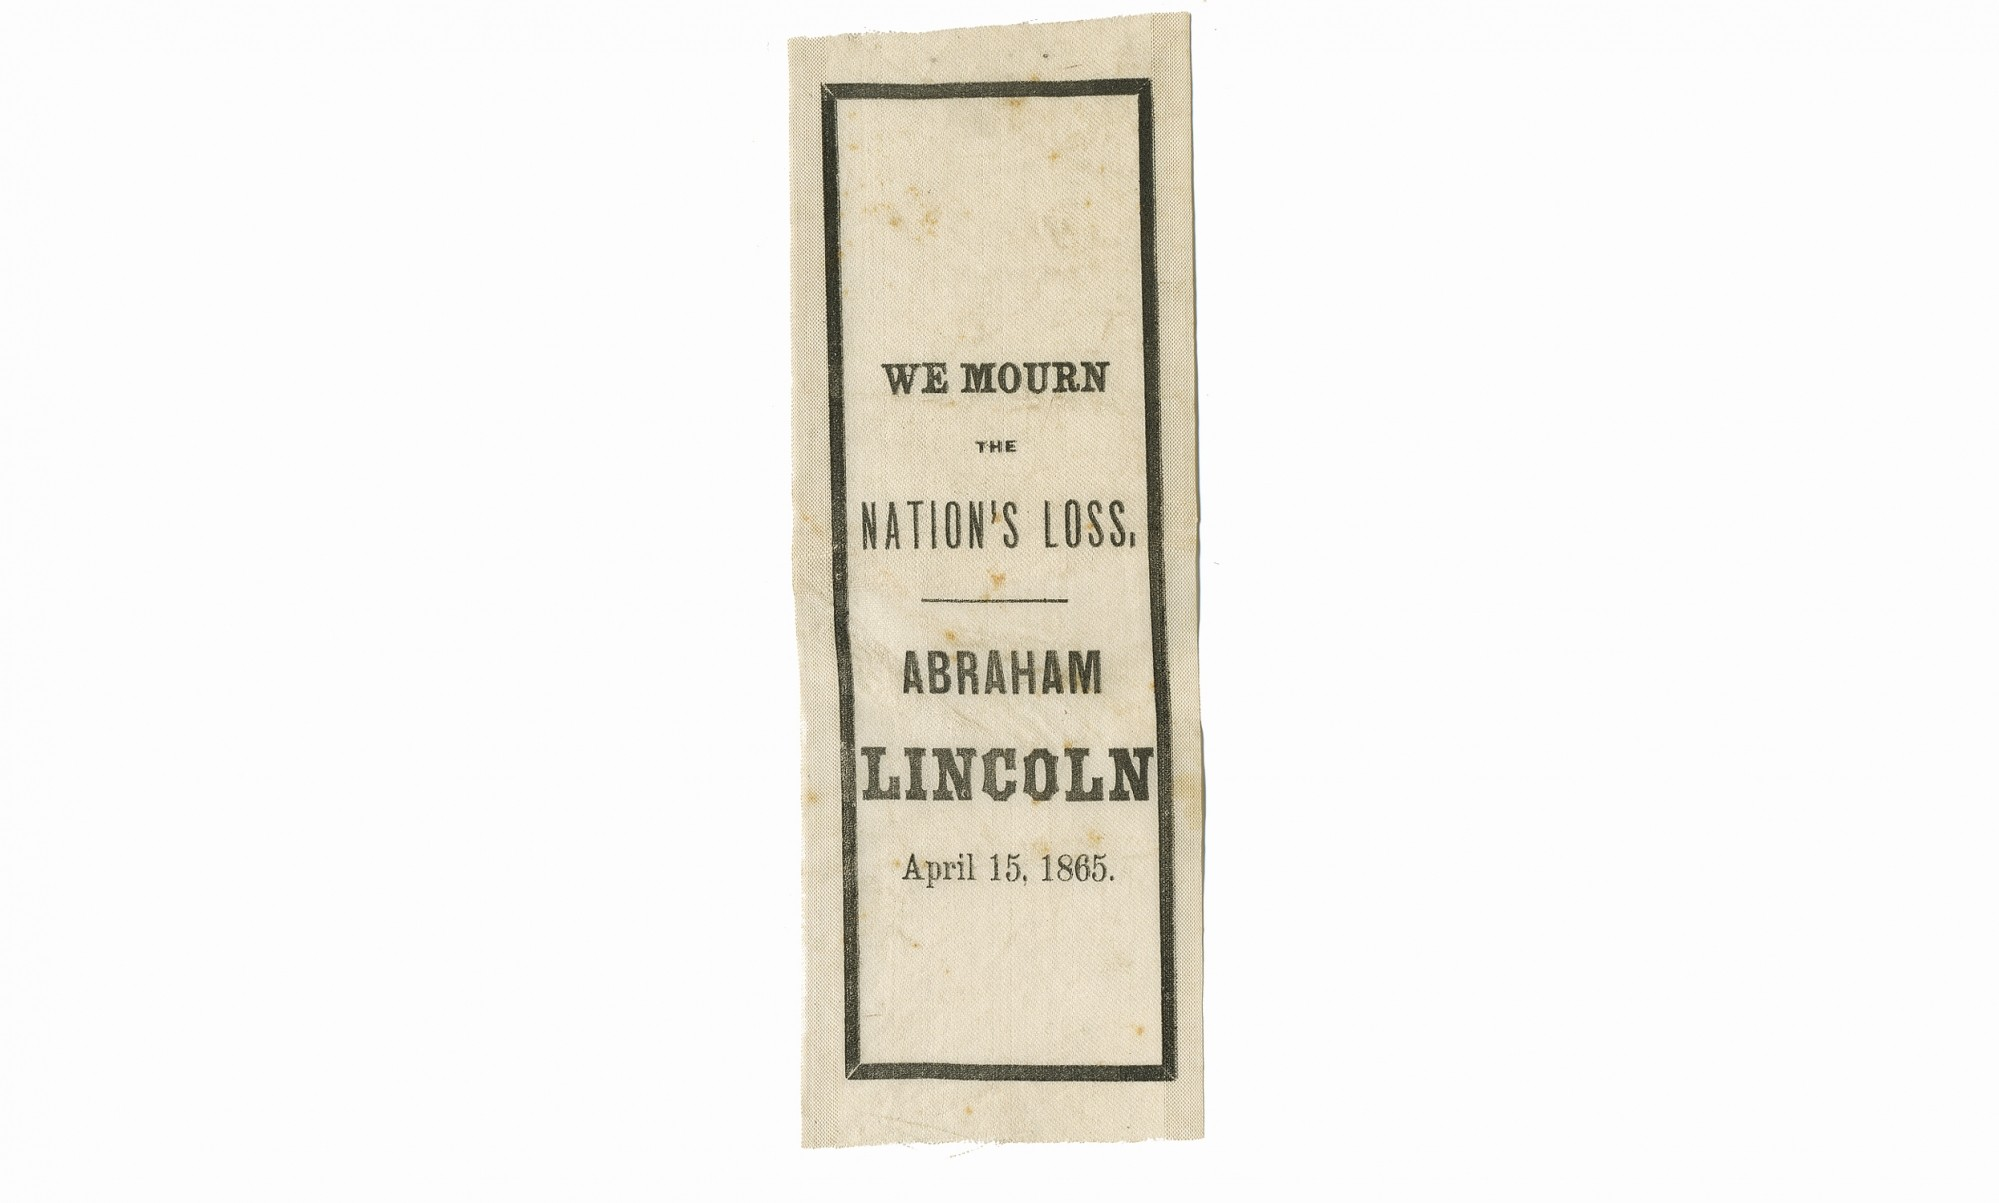 LINCOLN MOURNING RIBBON WITH CLIPPED ADVERTISEMENT OFFERING THEM TO THE PUBLIC